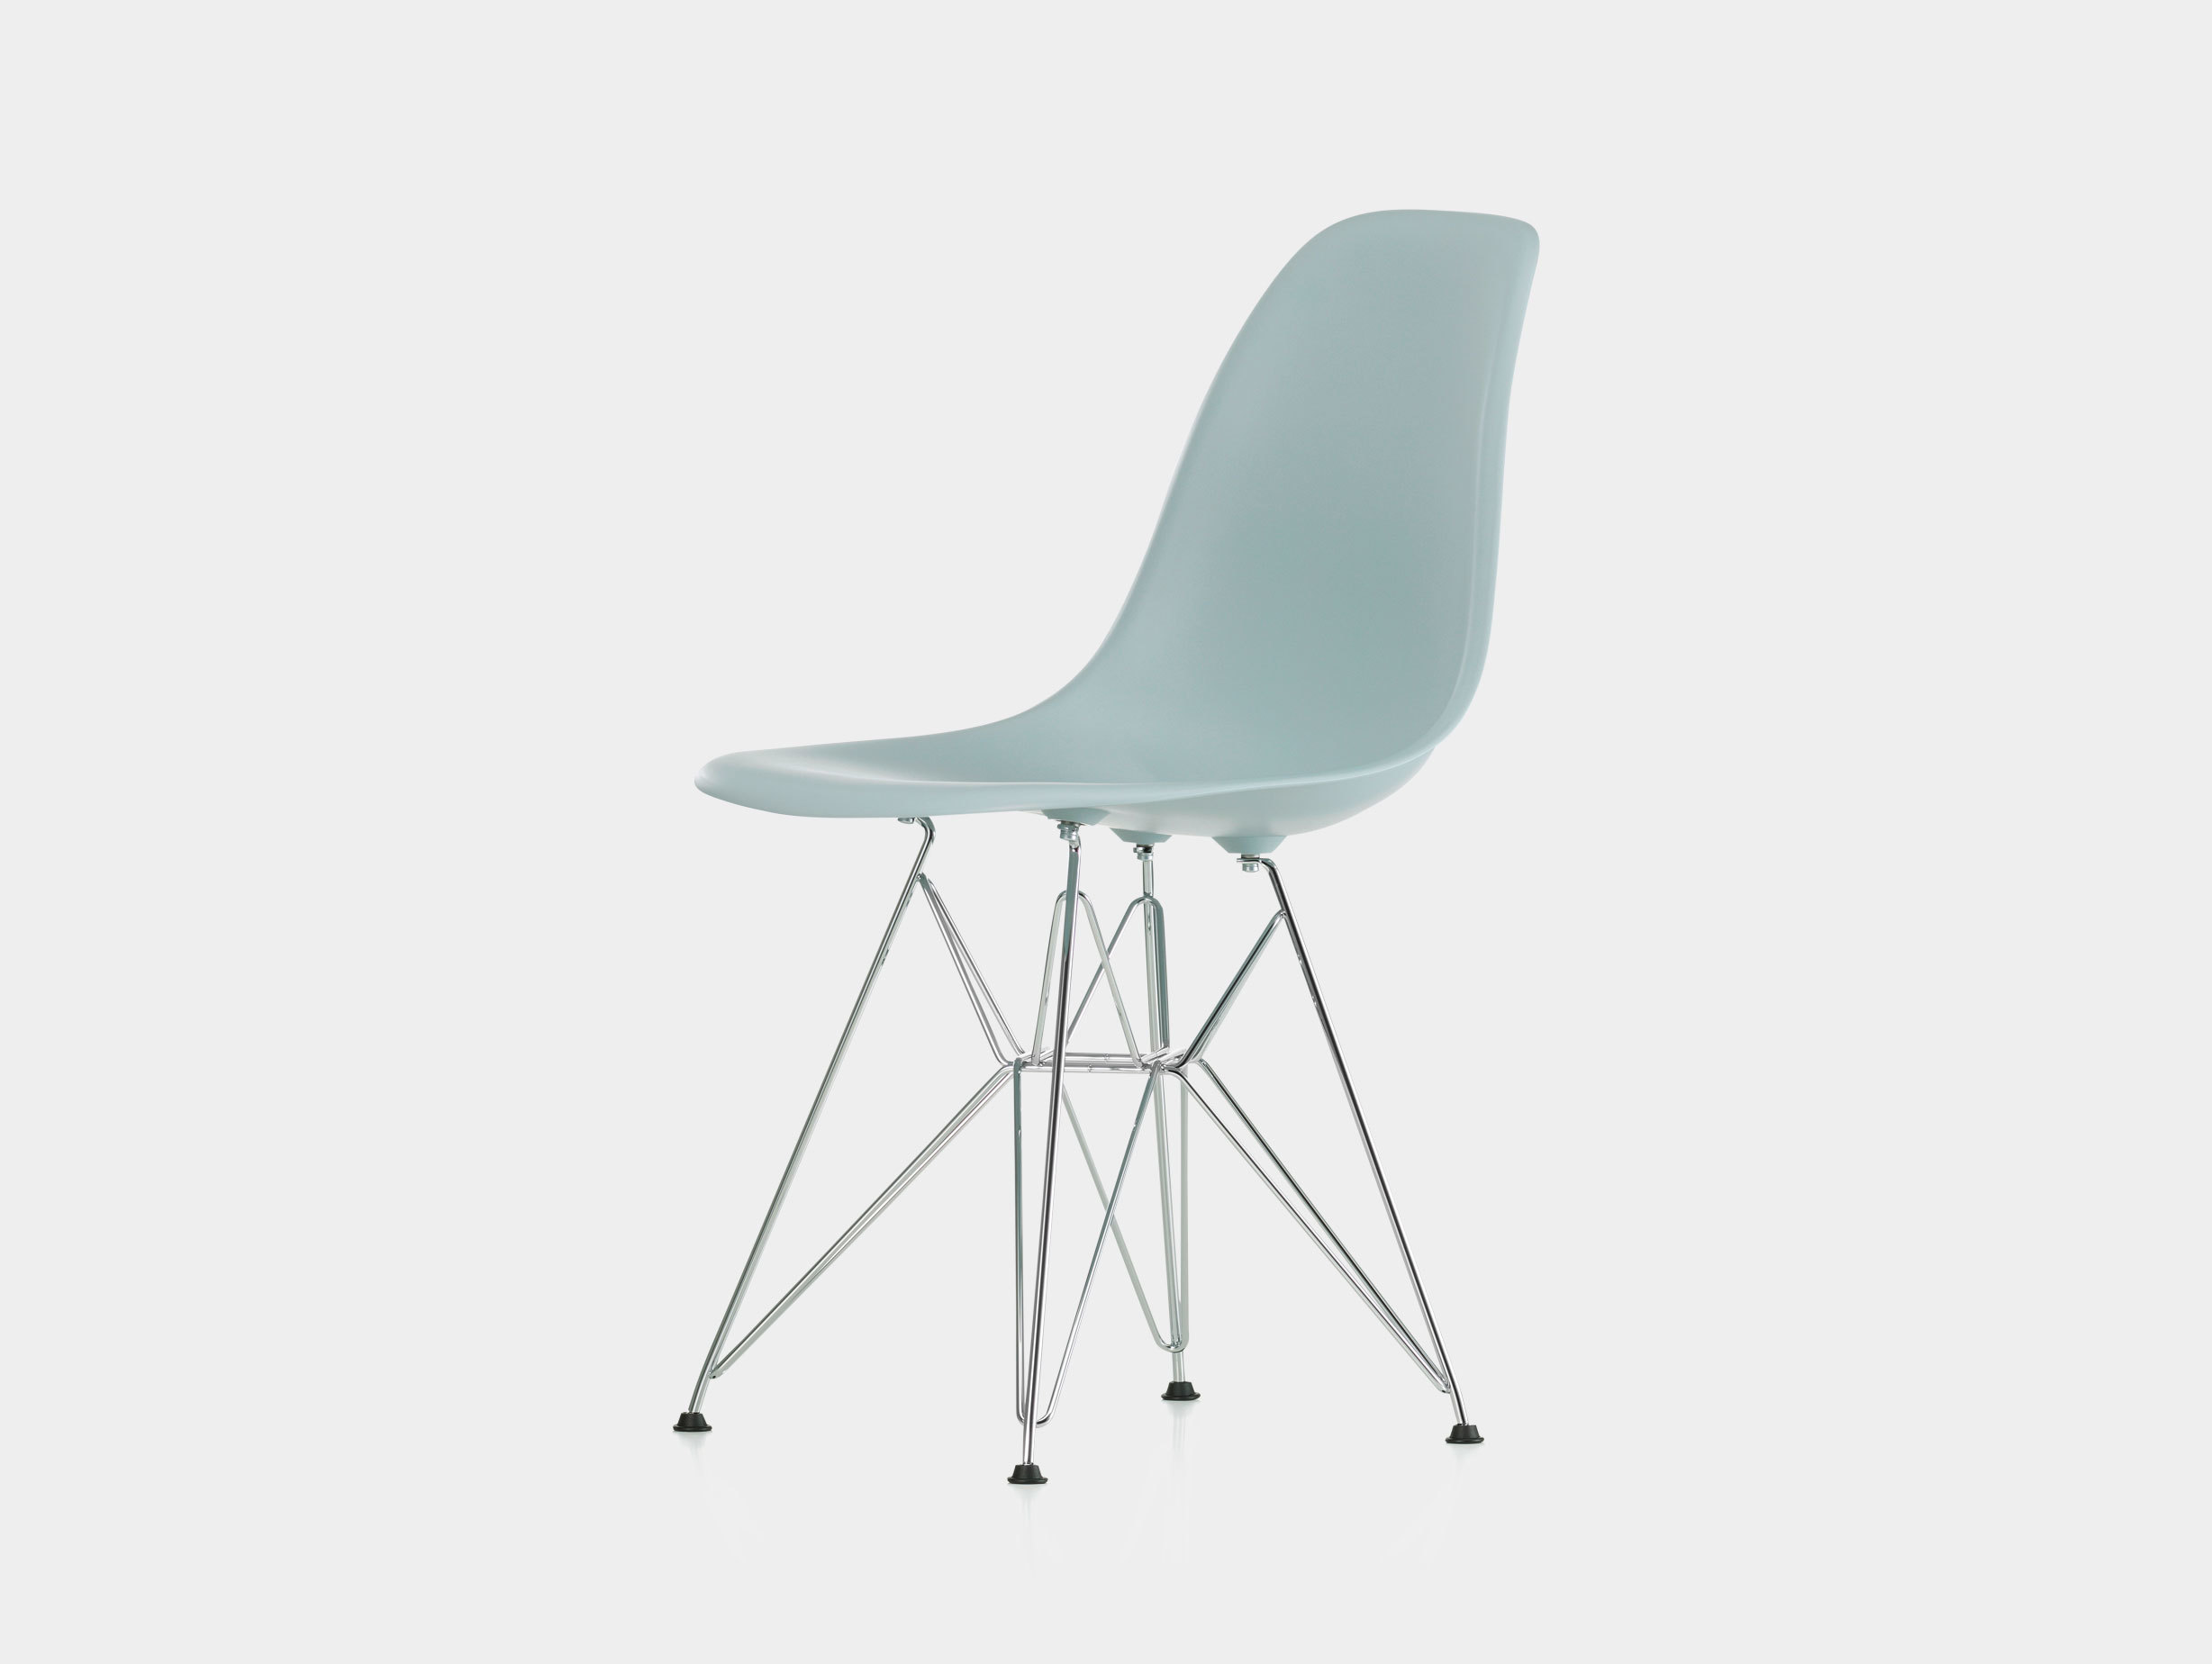 Eames DSR Plastic Side Chair image 3